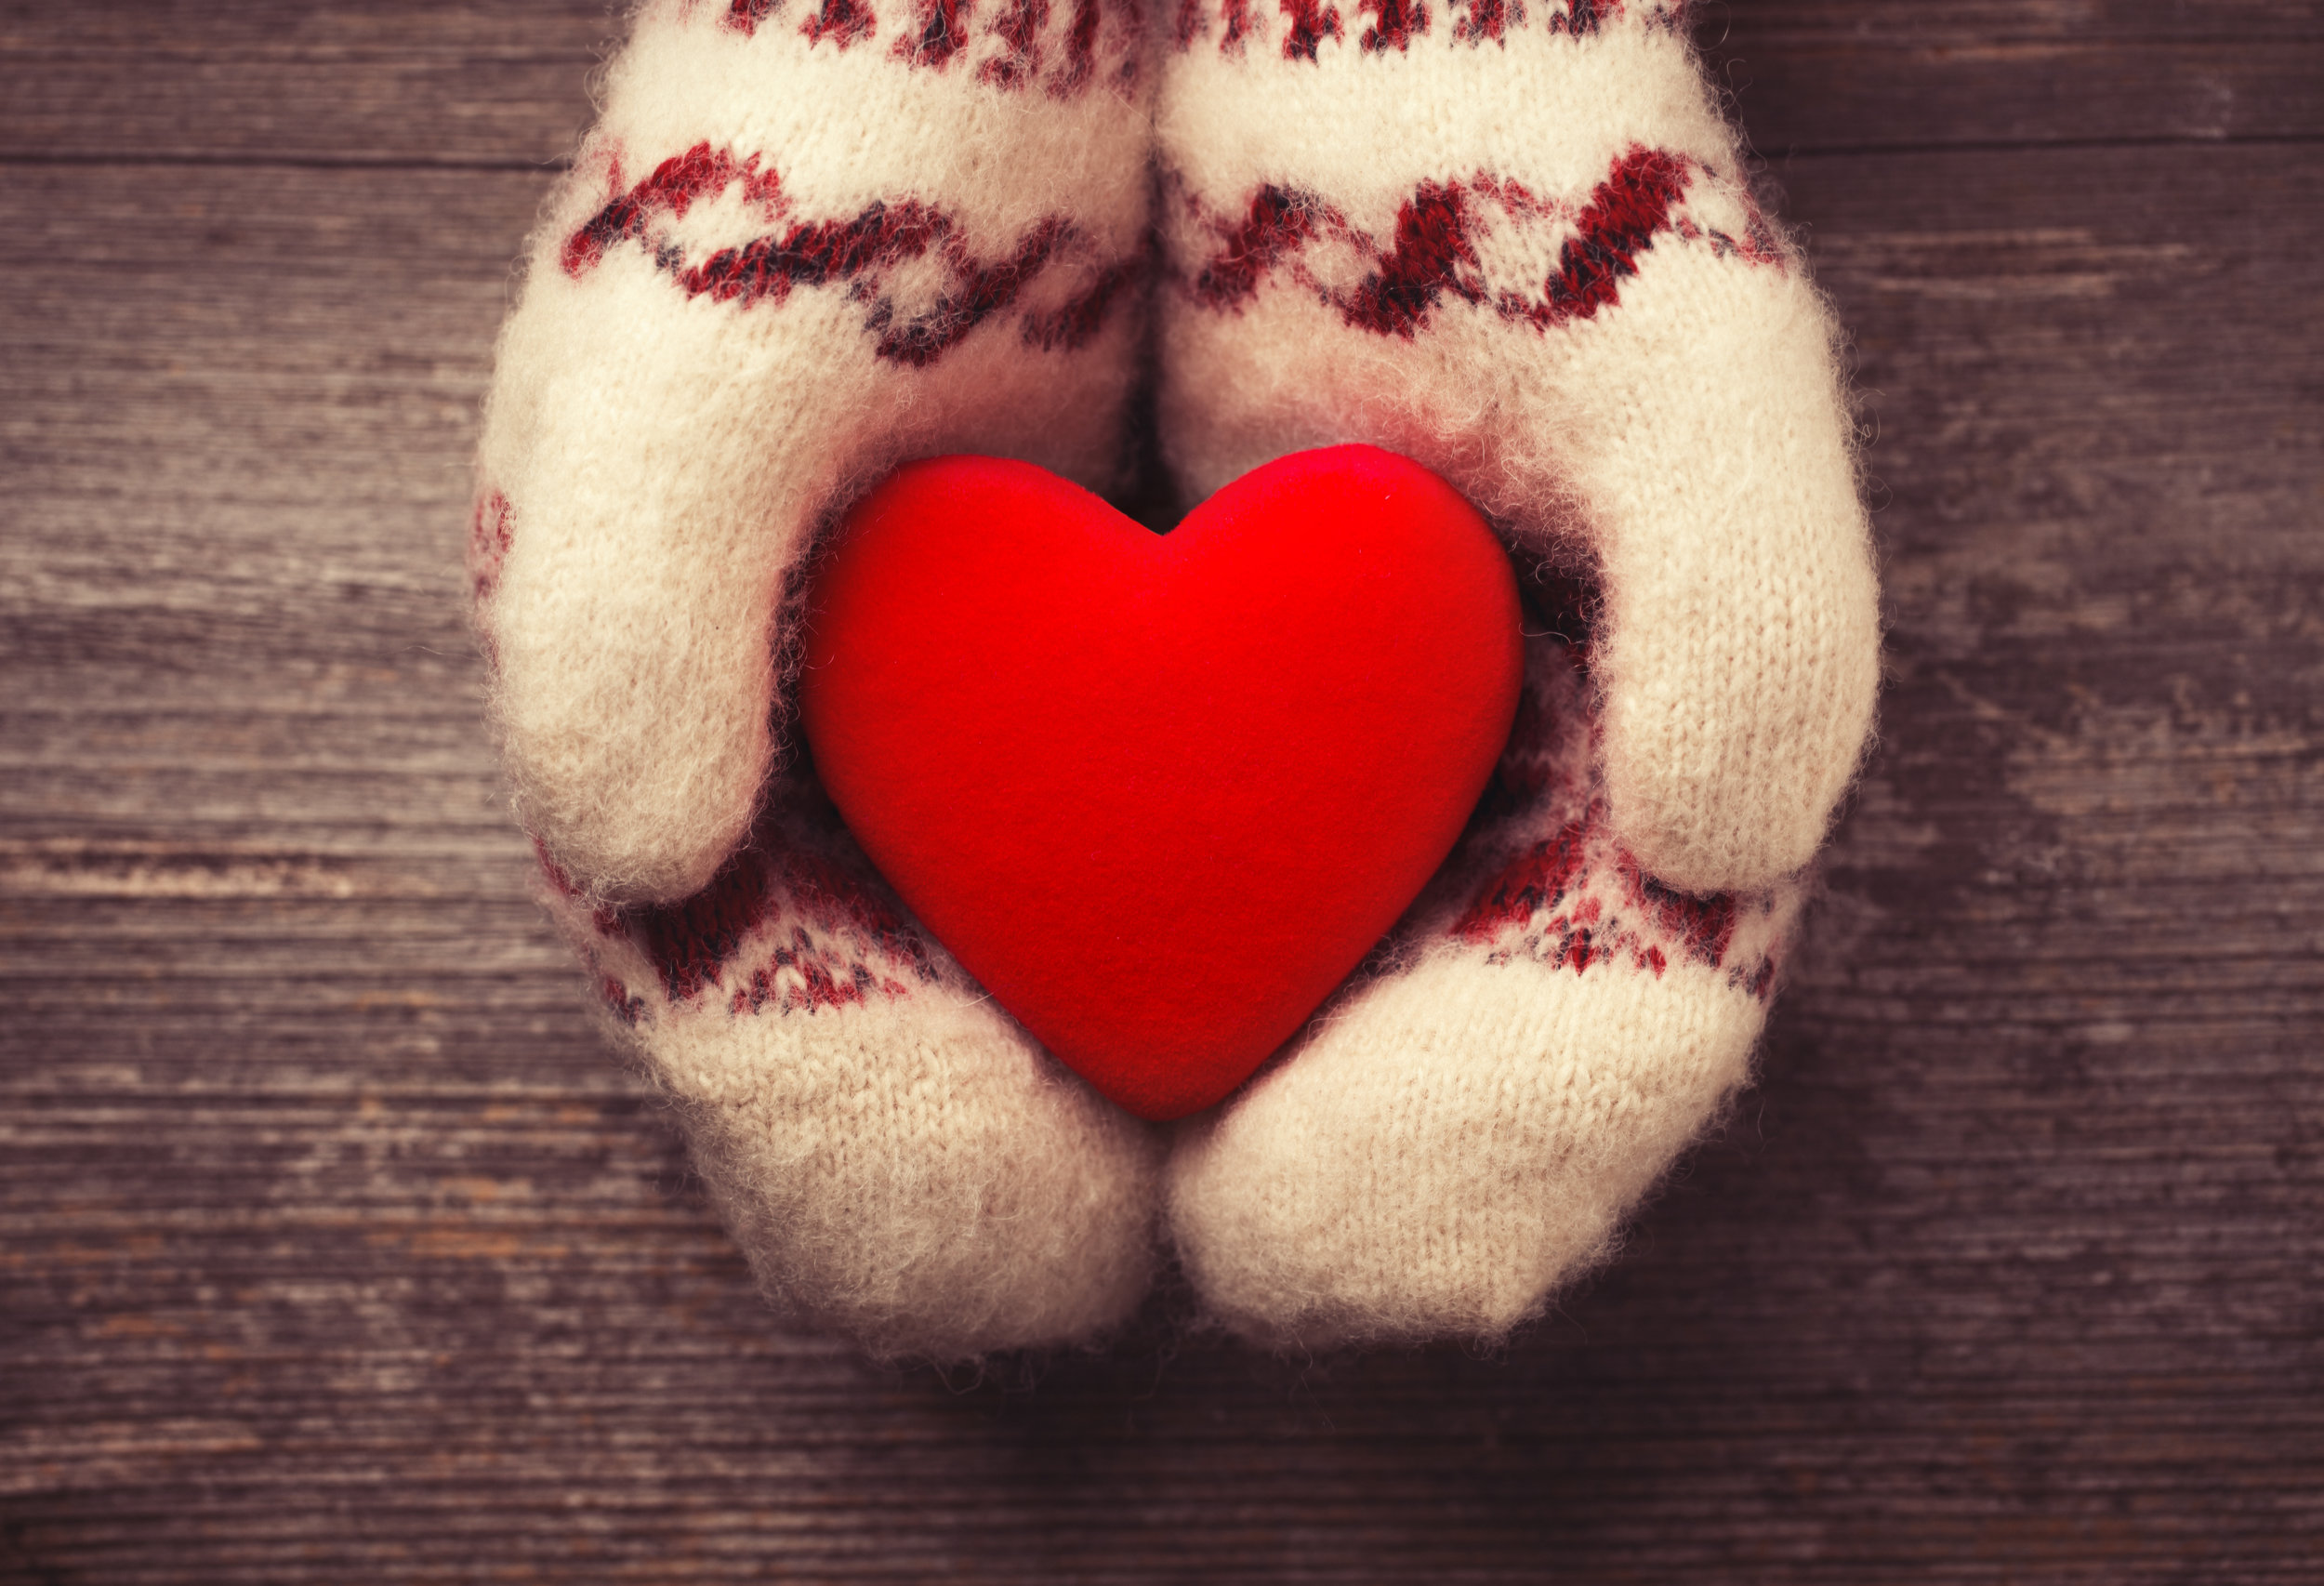 Spread the Love This Holiday With the Best Gifts That Give Back